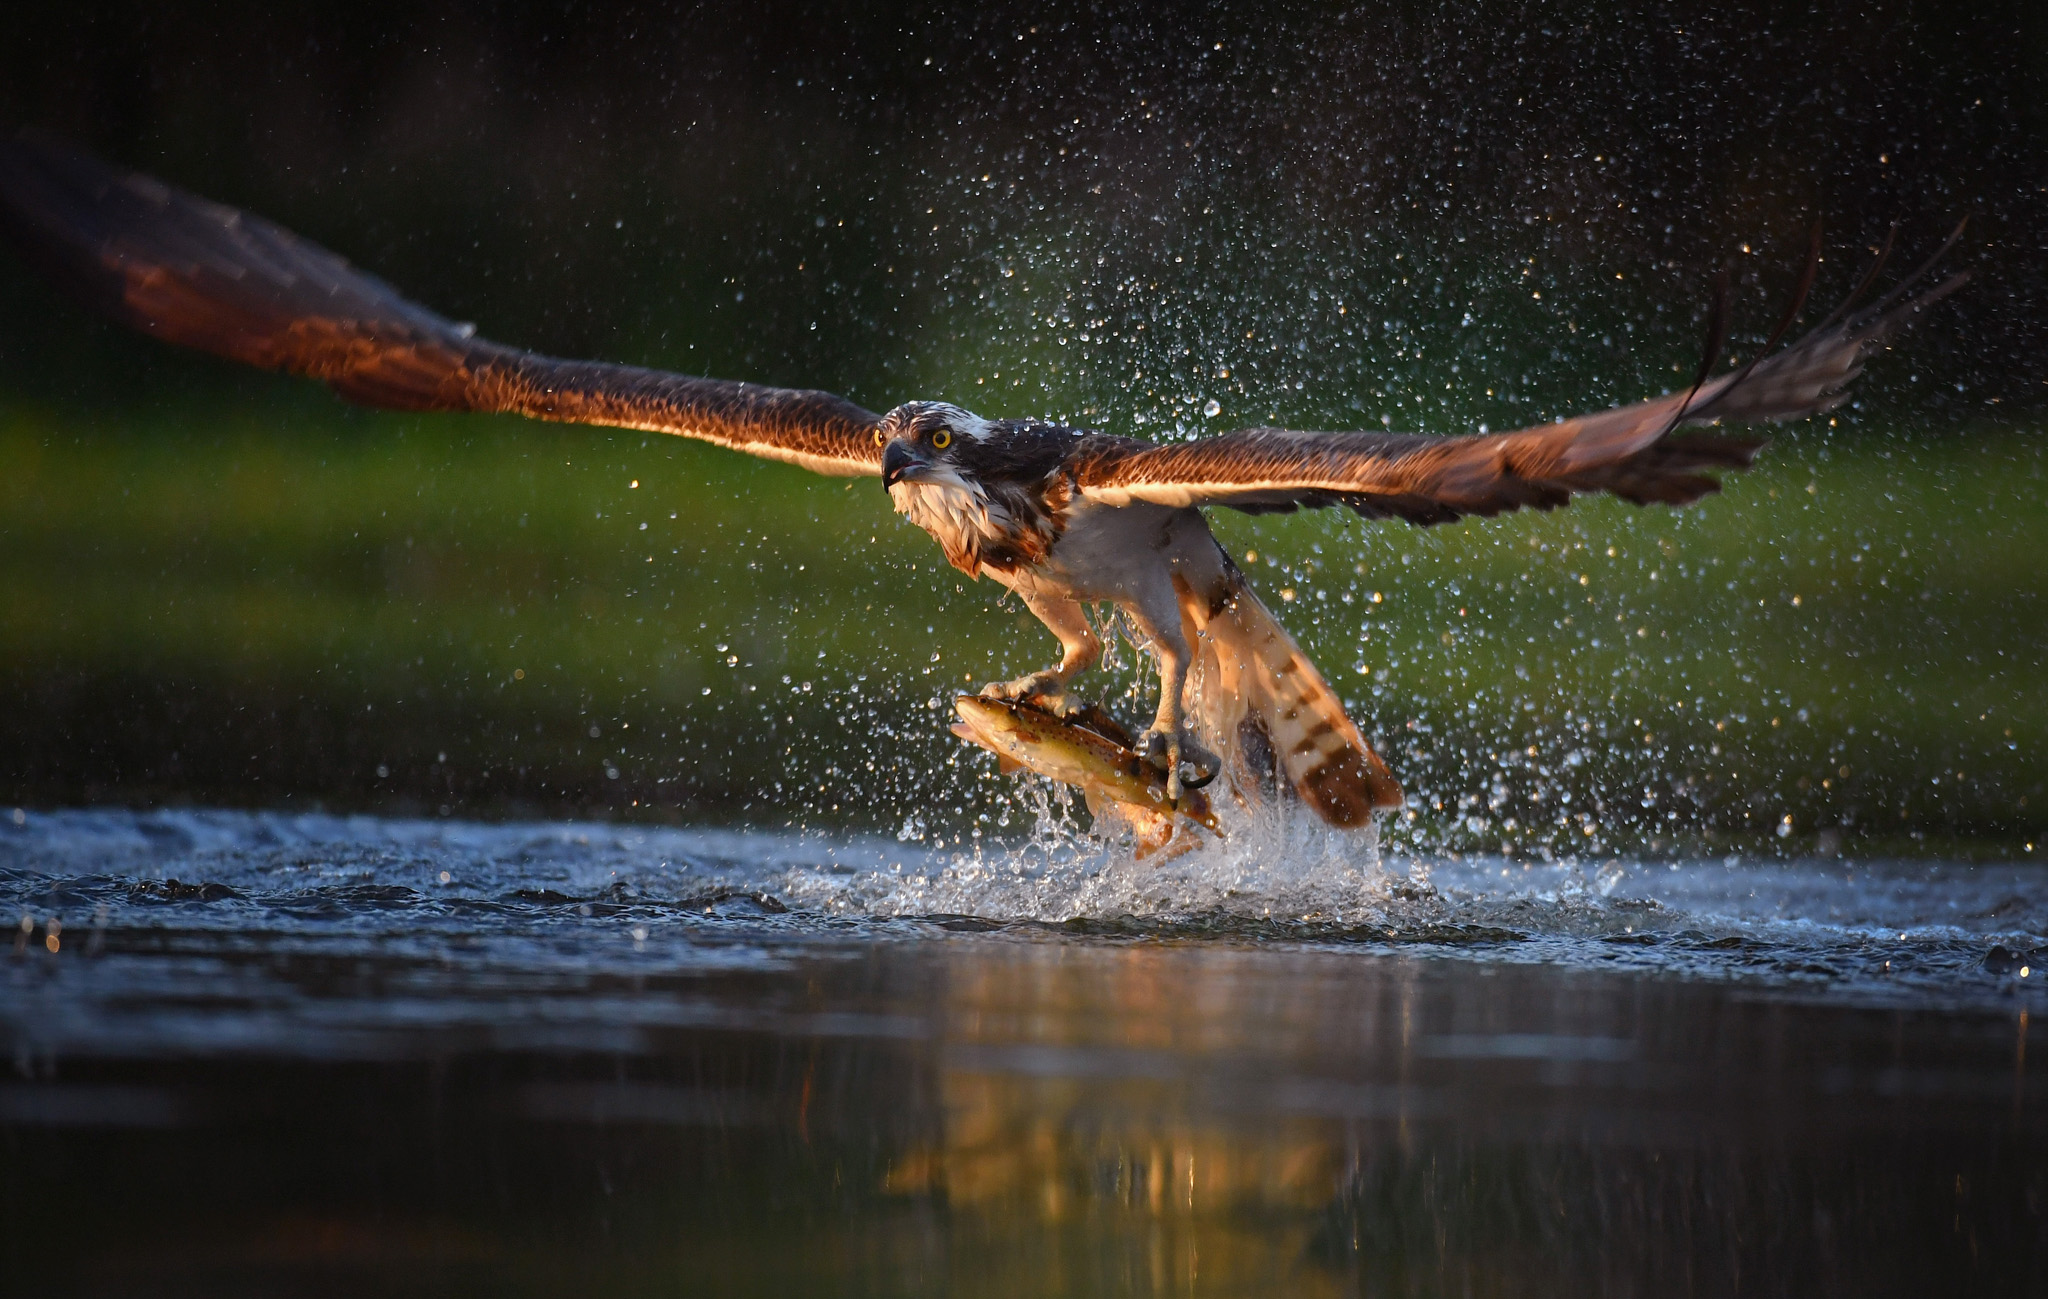 AVIEMORE, SCOTLAND - JUNE 07:  An Osprey catches two Rainbow Trout at Rothiemurchus on June 6, 2016 in Kincraig, Scotland. Ospreys migrate each spring from Africa and nest in tall pine trees around the Aviemore area, the raptor was hunted to the point of extinction in the Victorian era, their migratory habits eventually brought them back to Scotland with the first successful breeding pair being recorded in 1954.  (Photo by Jeff J Mitchell/Getty Images)